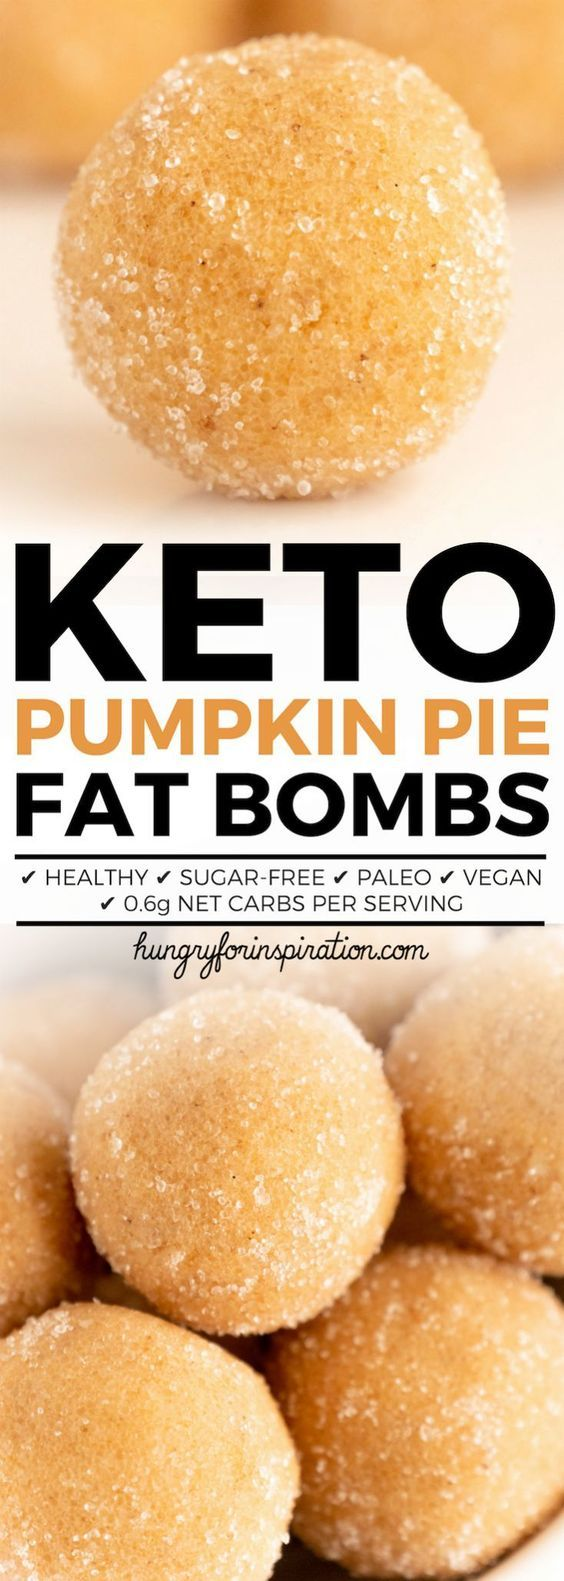 These Healthy No Bake Pumpkin Pie Keto Fat Bombs will satisfy your sweet tooth and give you that cozy fall feeling in no time! They are the perfect Keto Dessert (Low Carb Desserts) as well as Paleo & Vegan! Only 0.6g net carbs per serving! (Keto Snacks) #keto #ketodiet #ketorecipes #ketogenic #ketogenicdiet #ketodessert #lowcarb #lowcarbrecipes #lowcarbdiet #lowcarbdessert #pumpkinrecipes #ketodesserts